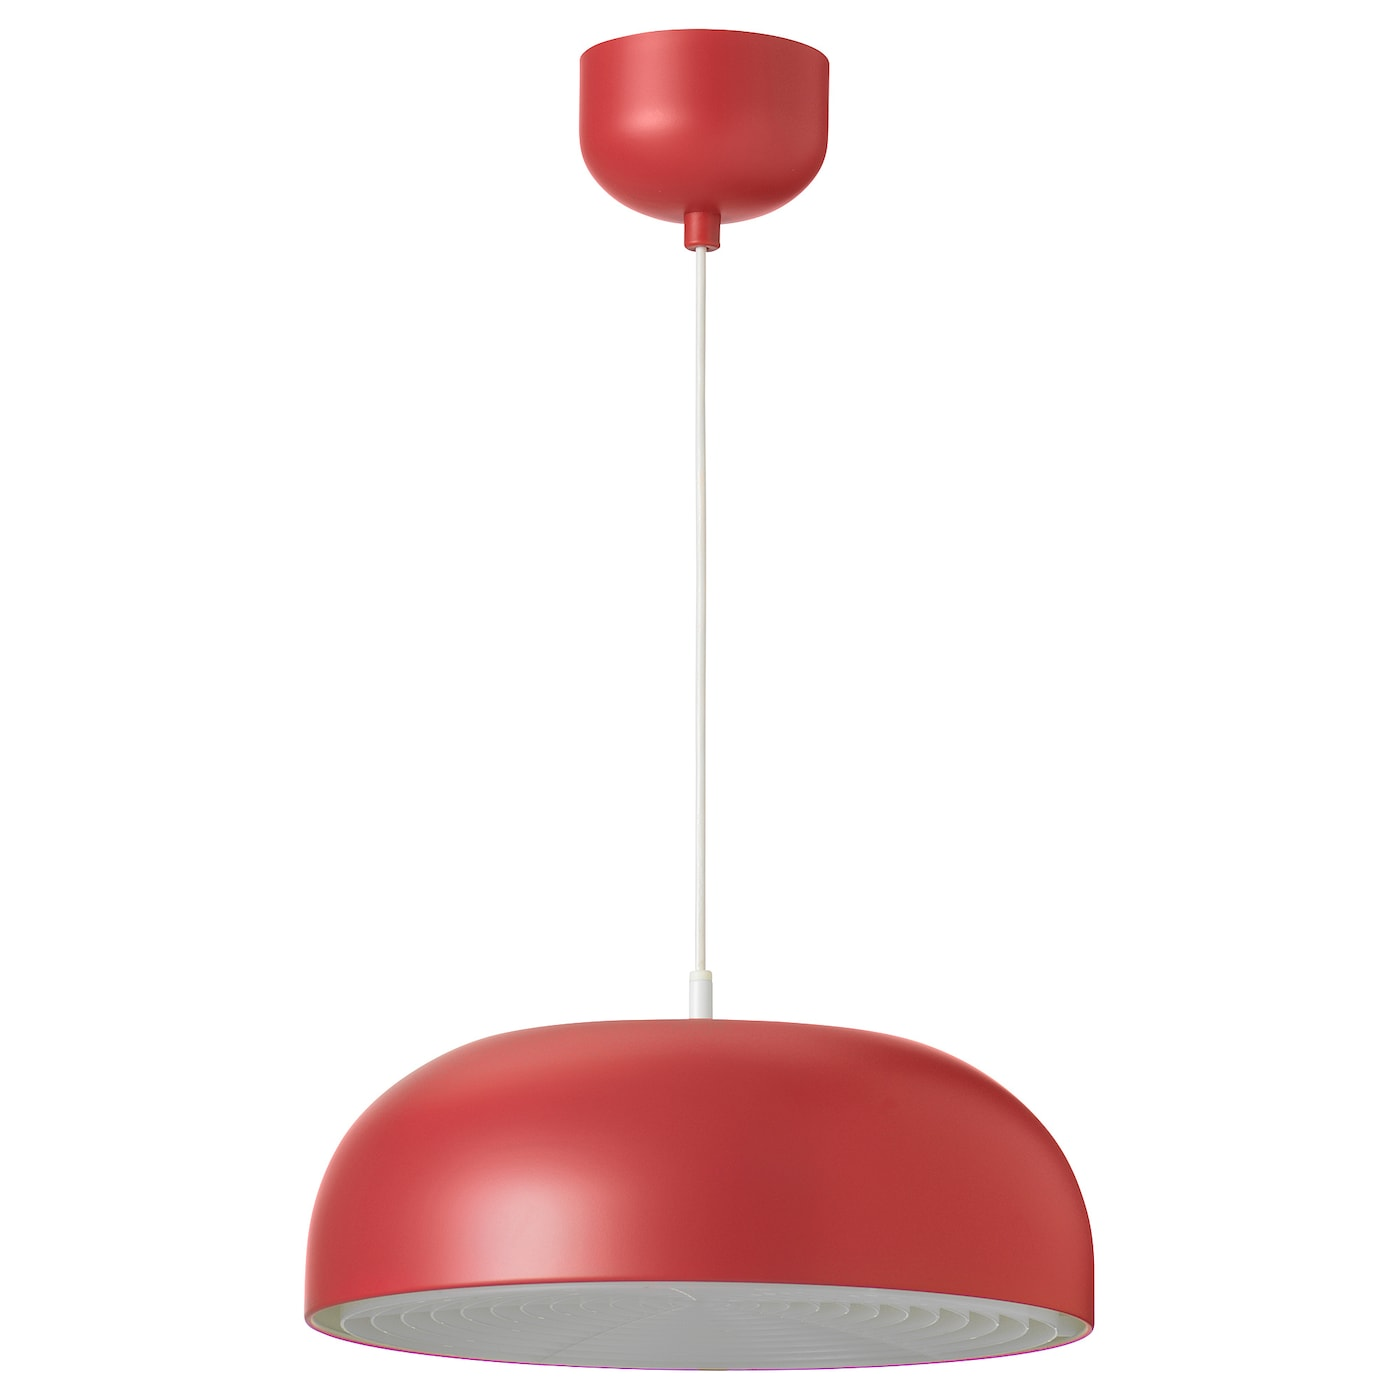 IKEA NYMÅNE suspension